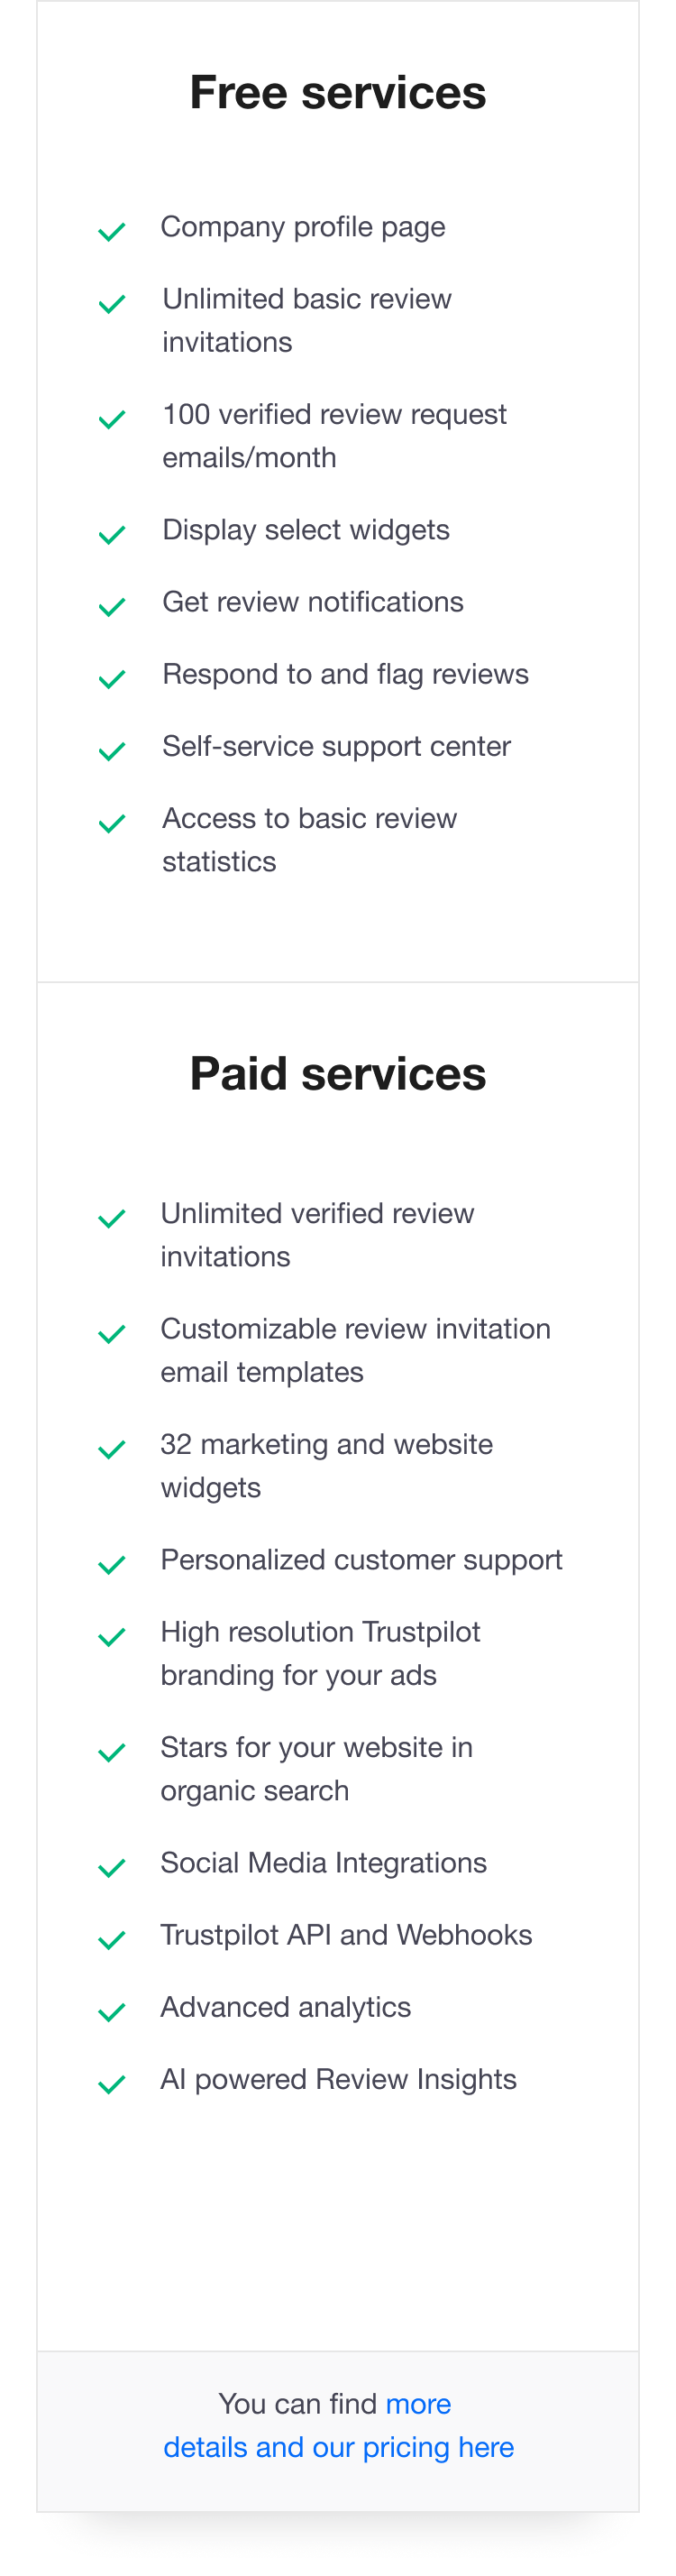 Illustration of a list describing the benefits of Trustpilot's Free and Paid services - Phone